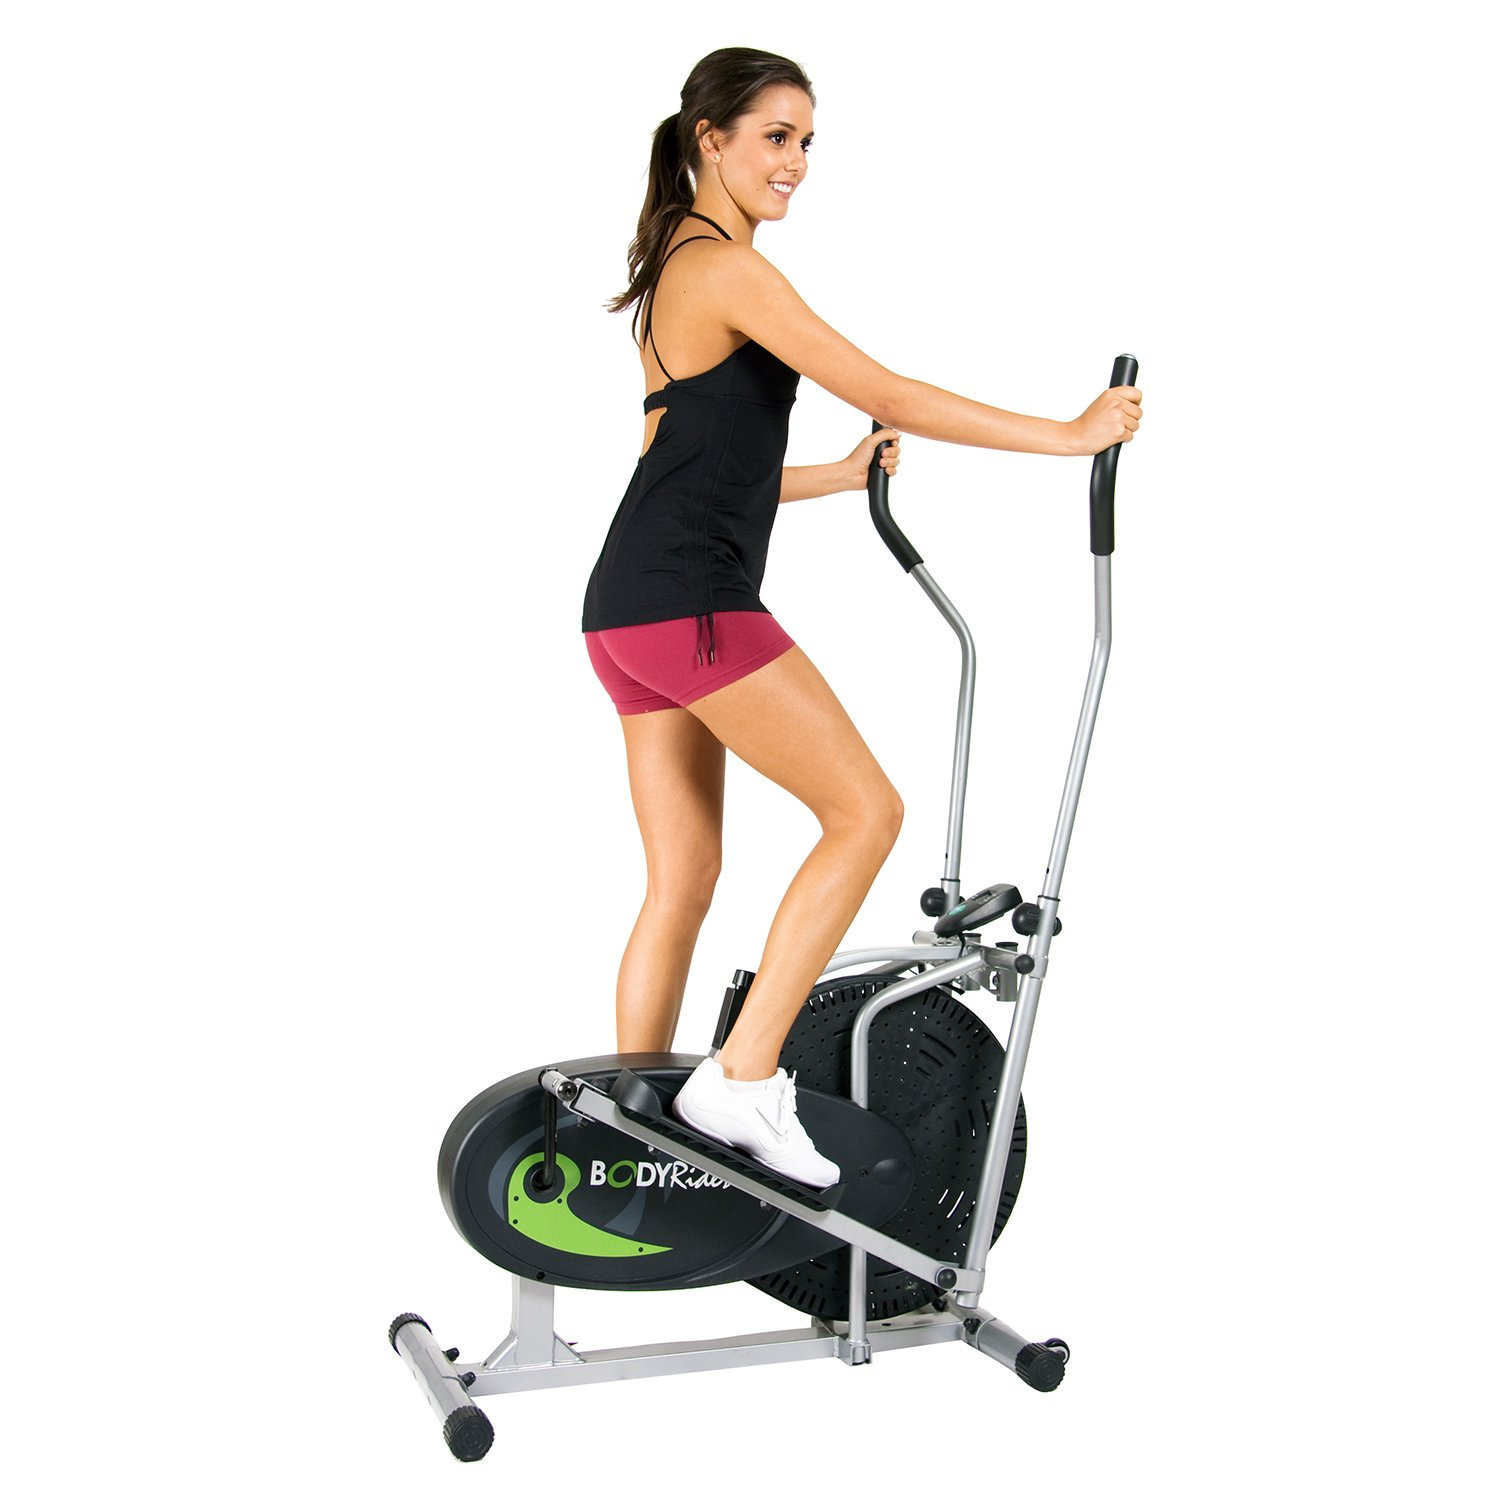 Body Rider Fan Elliptical Trainer with Air Resistance System, Adjustable Levels and Easy Computer BR1830 by Body Max (Image #3)